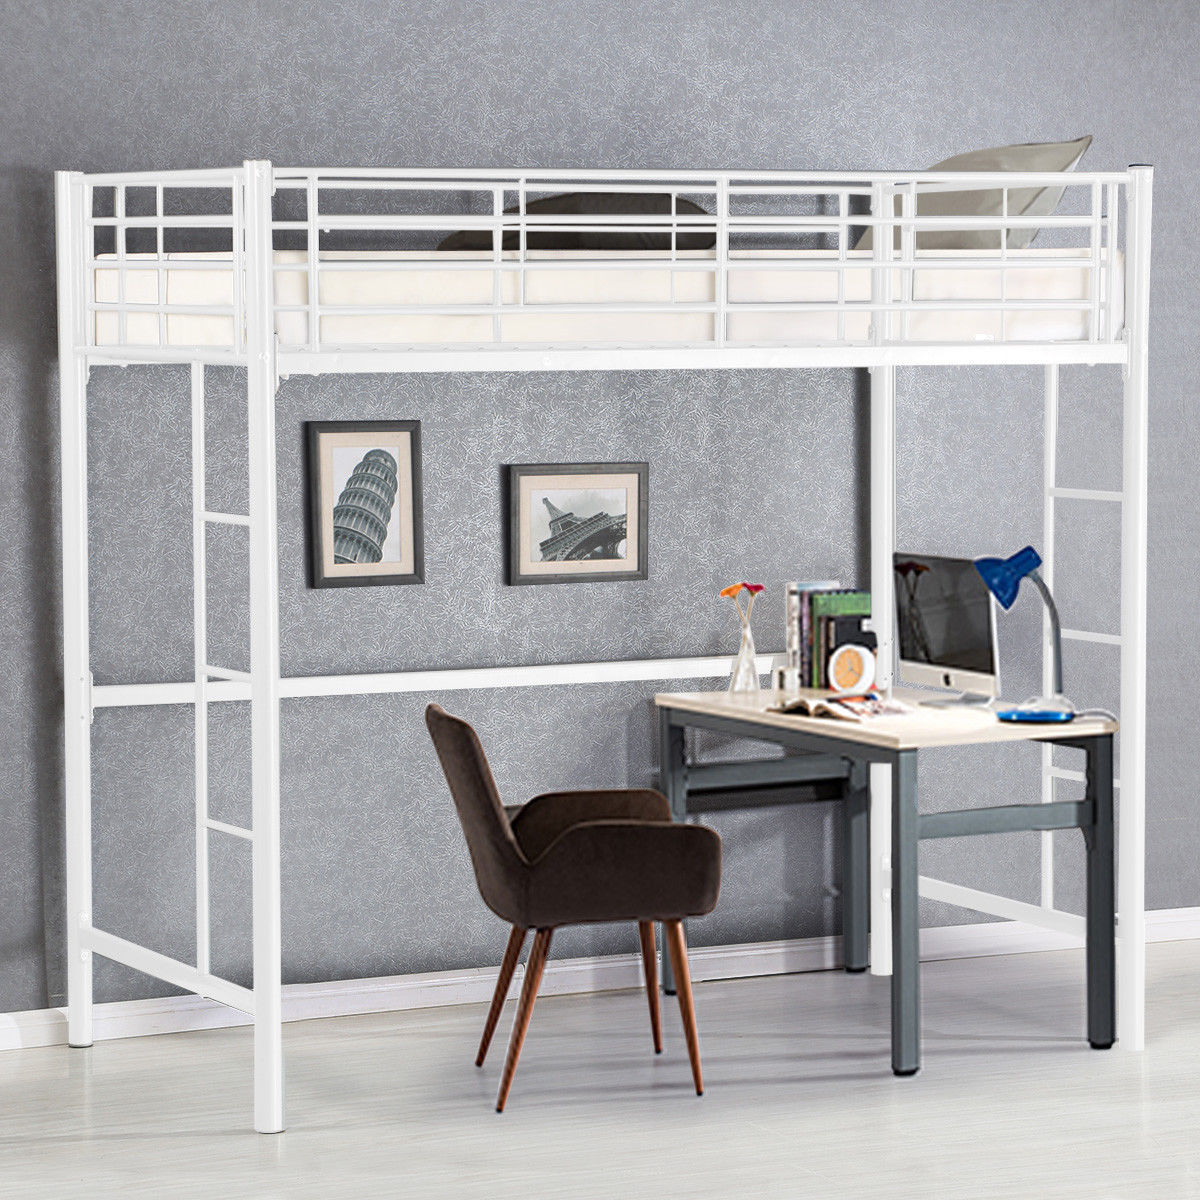 Gymax Twin Loft Bed Metal Bunk Ladder Beds Boys Girls Teens Kids Bedroom Dorm White